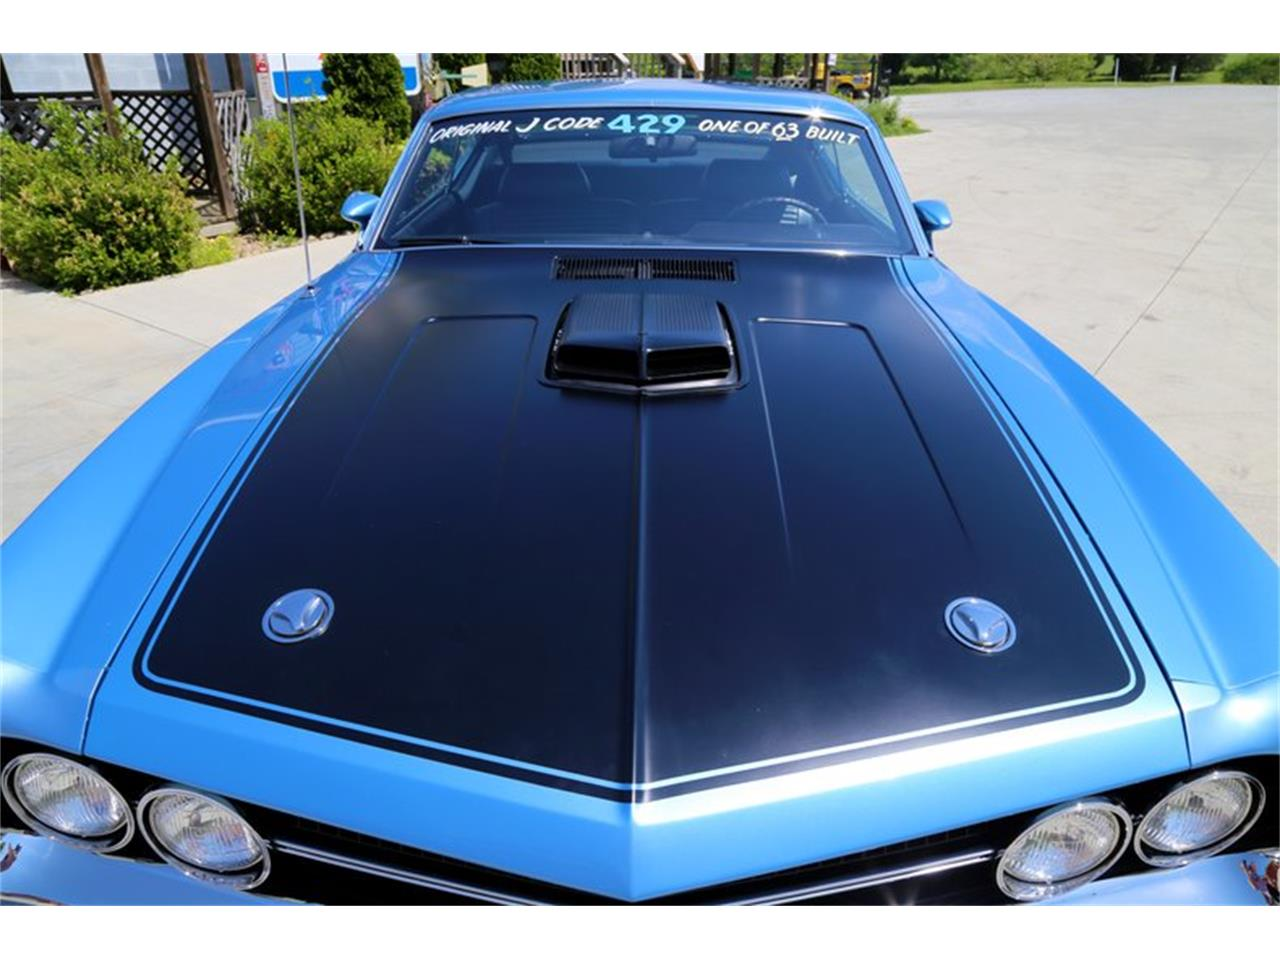 Large Picture of Classic 1970 Ford Torino - $64,999.00 - N6PC